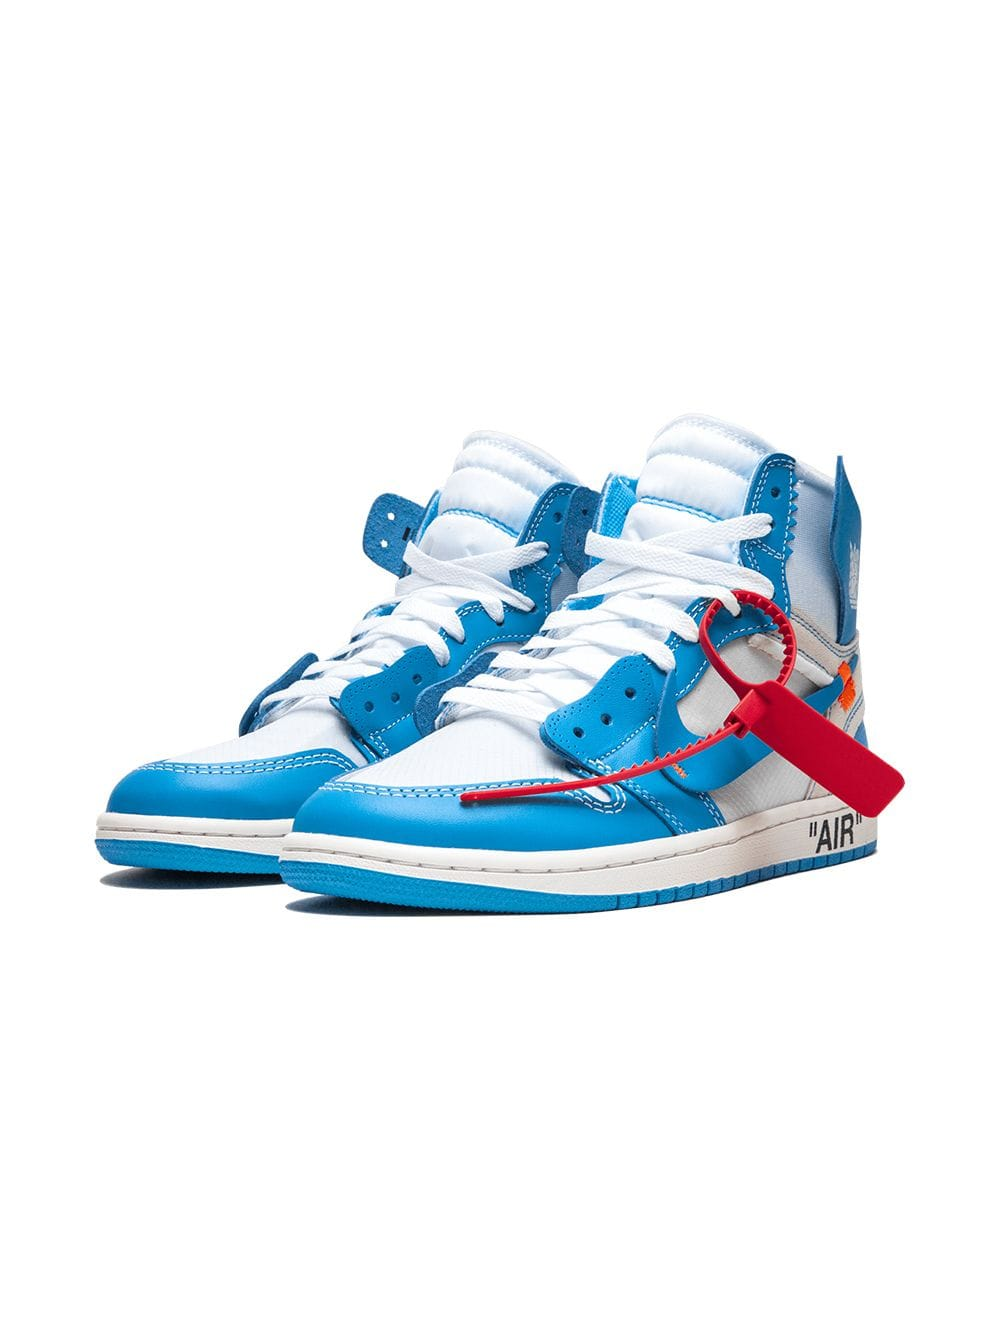 Yankeekicks Store Air Jordan 1 Retro High Off-White University Blue AQ0818-148